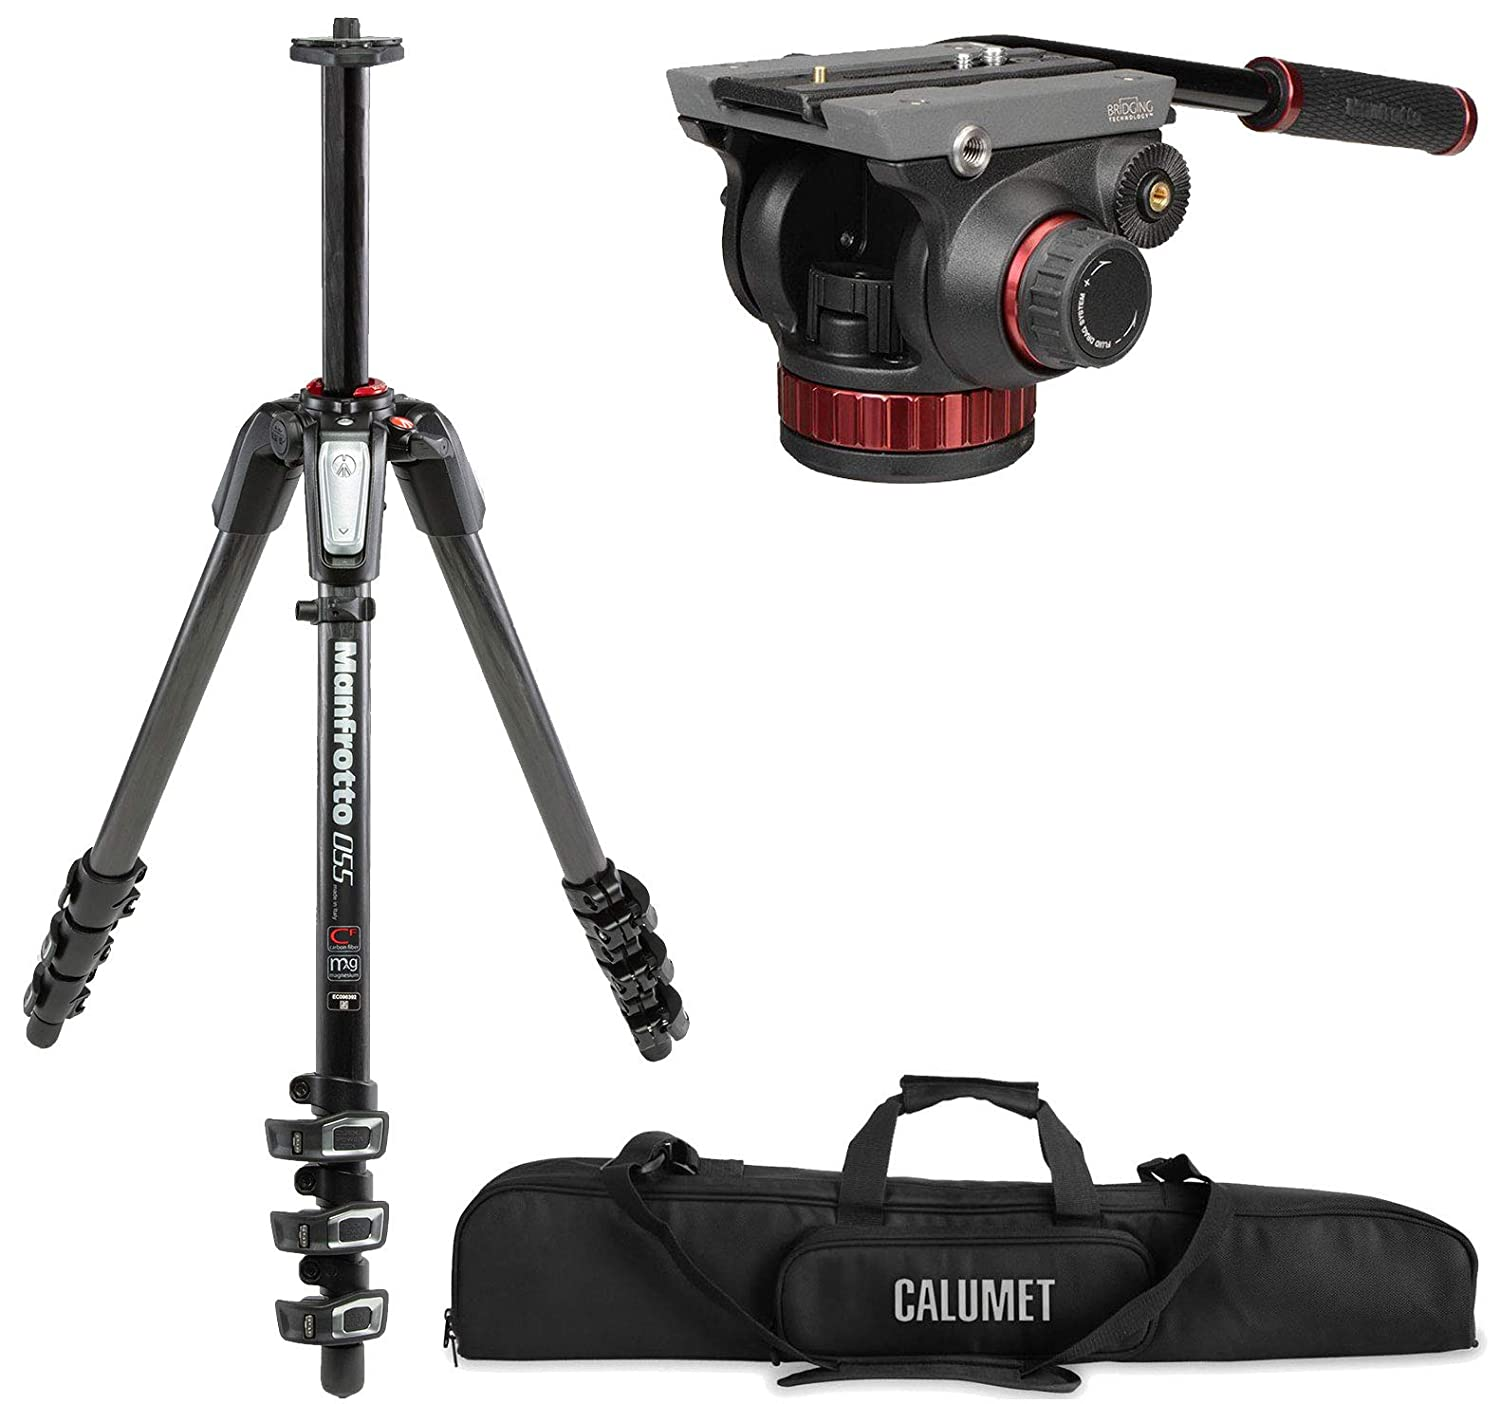 Manfrotto mt055cxpro4 055カーボンファイバー4-section三脚キットwith 502ビデオヘッドand a Calumetパッド入りケース   B013RNBQYA